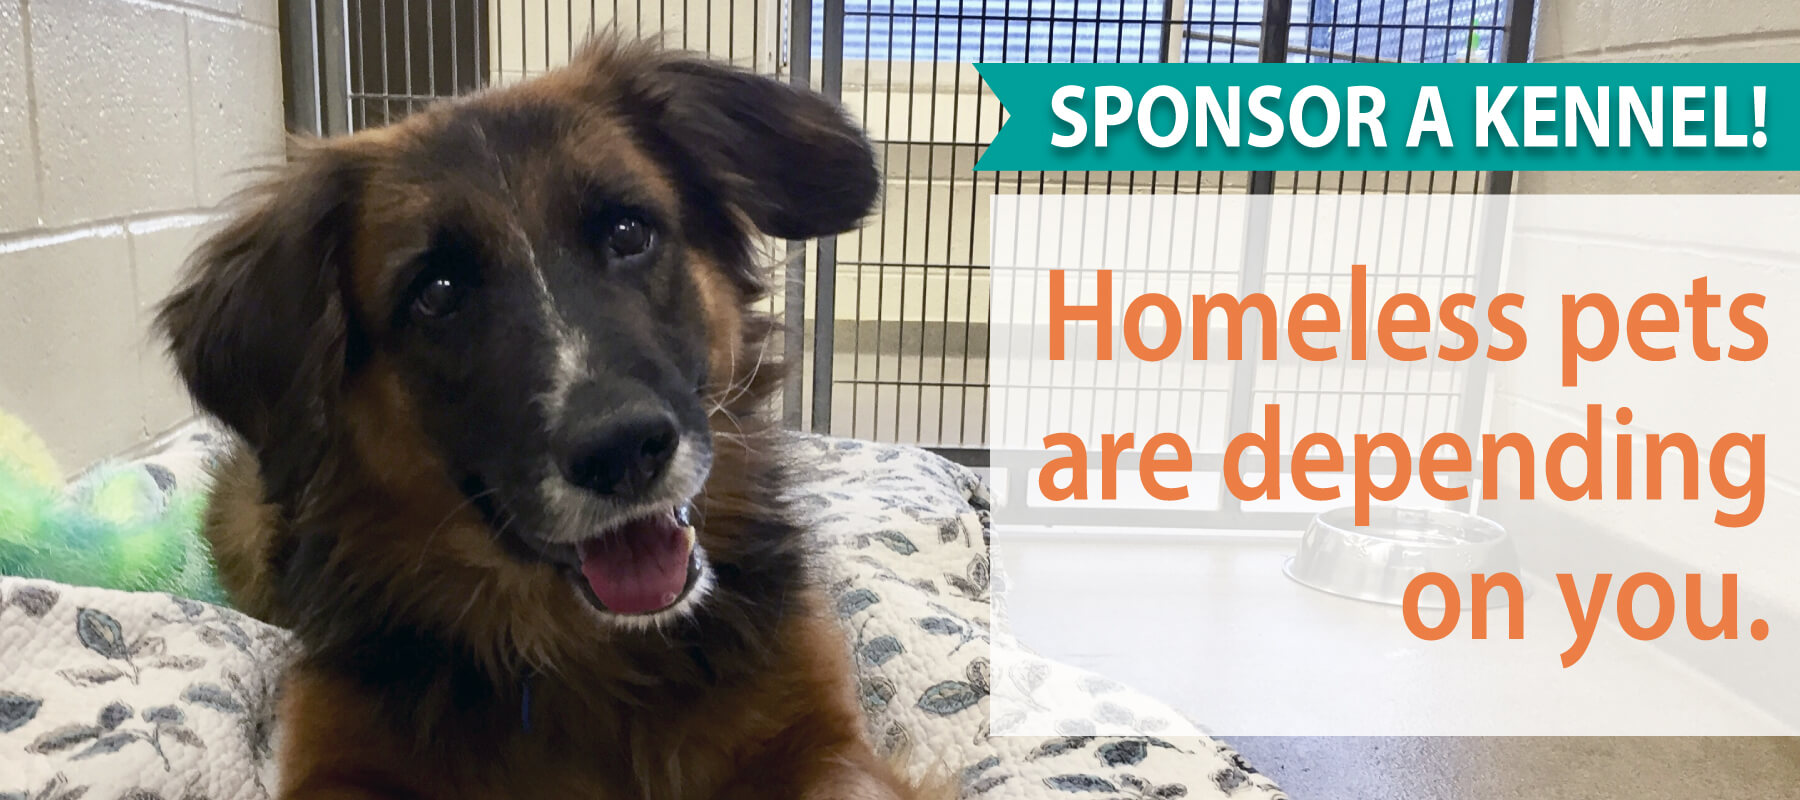 Put your business front and center with a Kennel Sponsorship, and provide a homeless animal with a place to rest while waiting for a forever home.